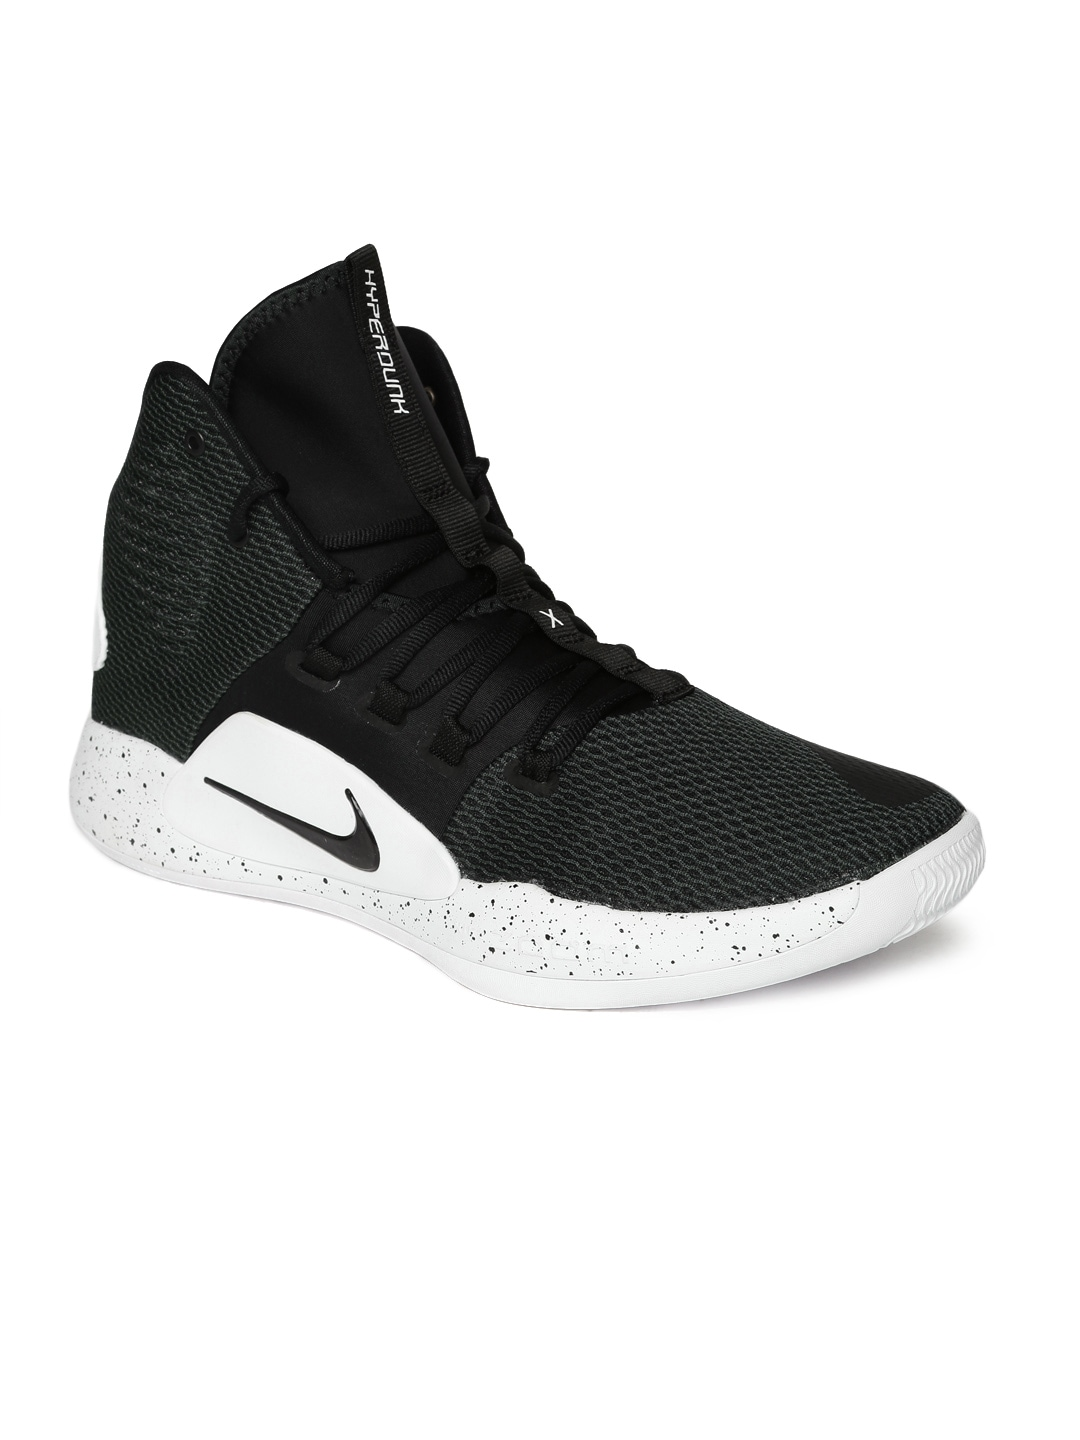 17d320ab49b2 Nike Basketball Shoes